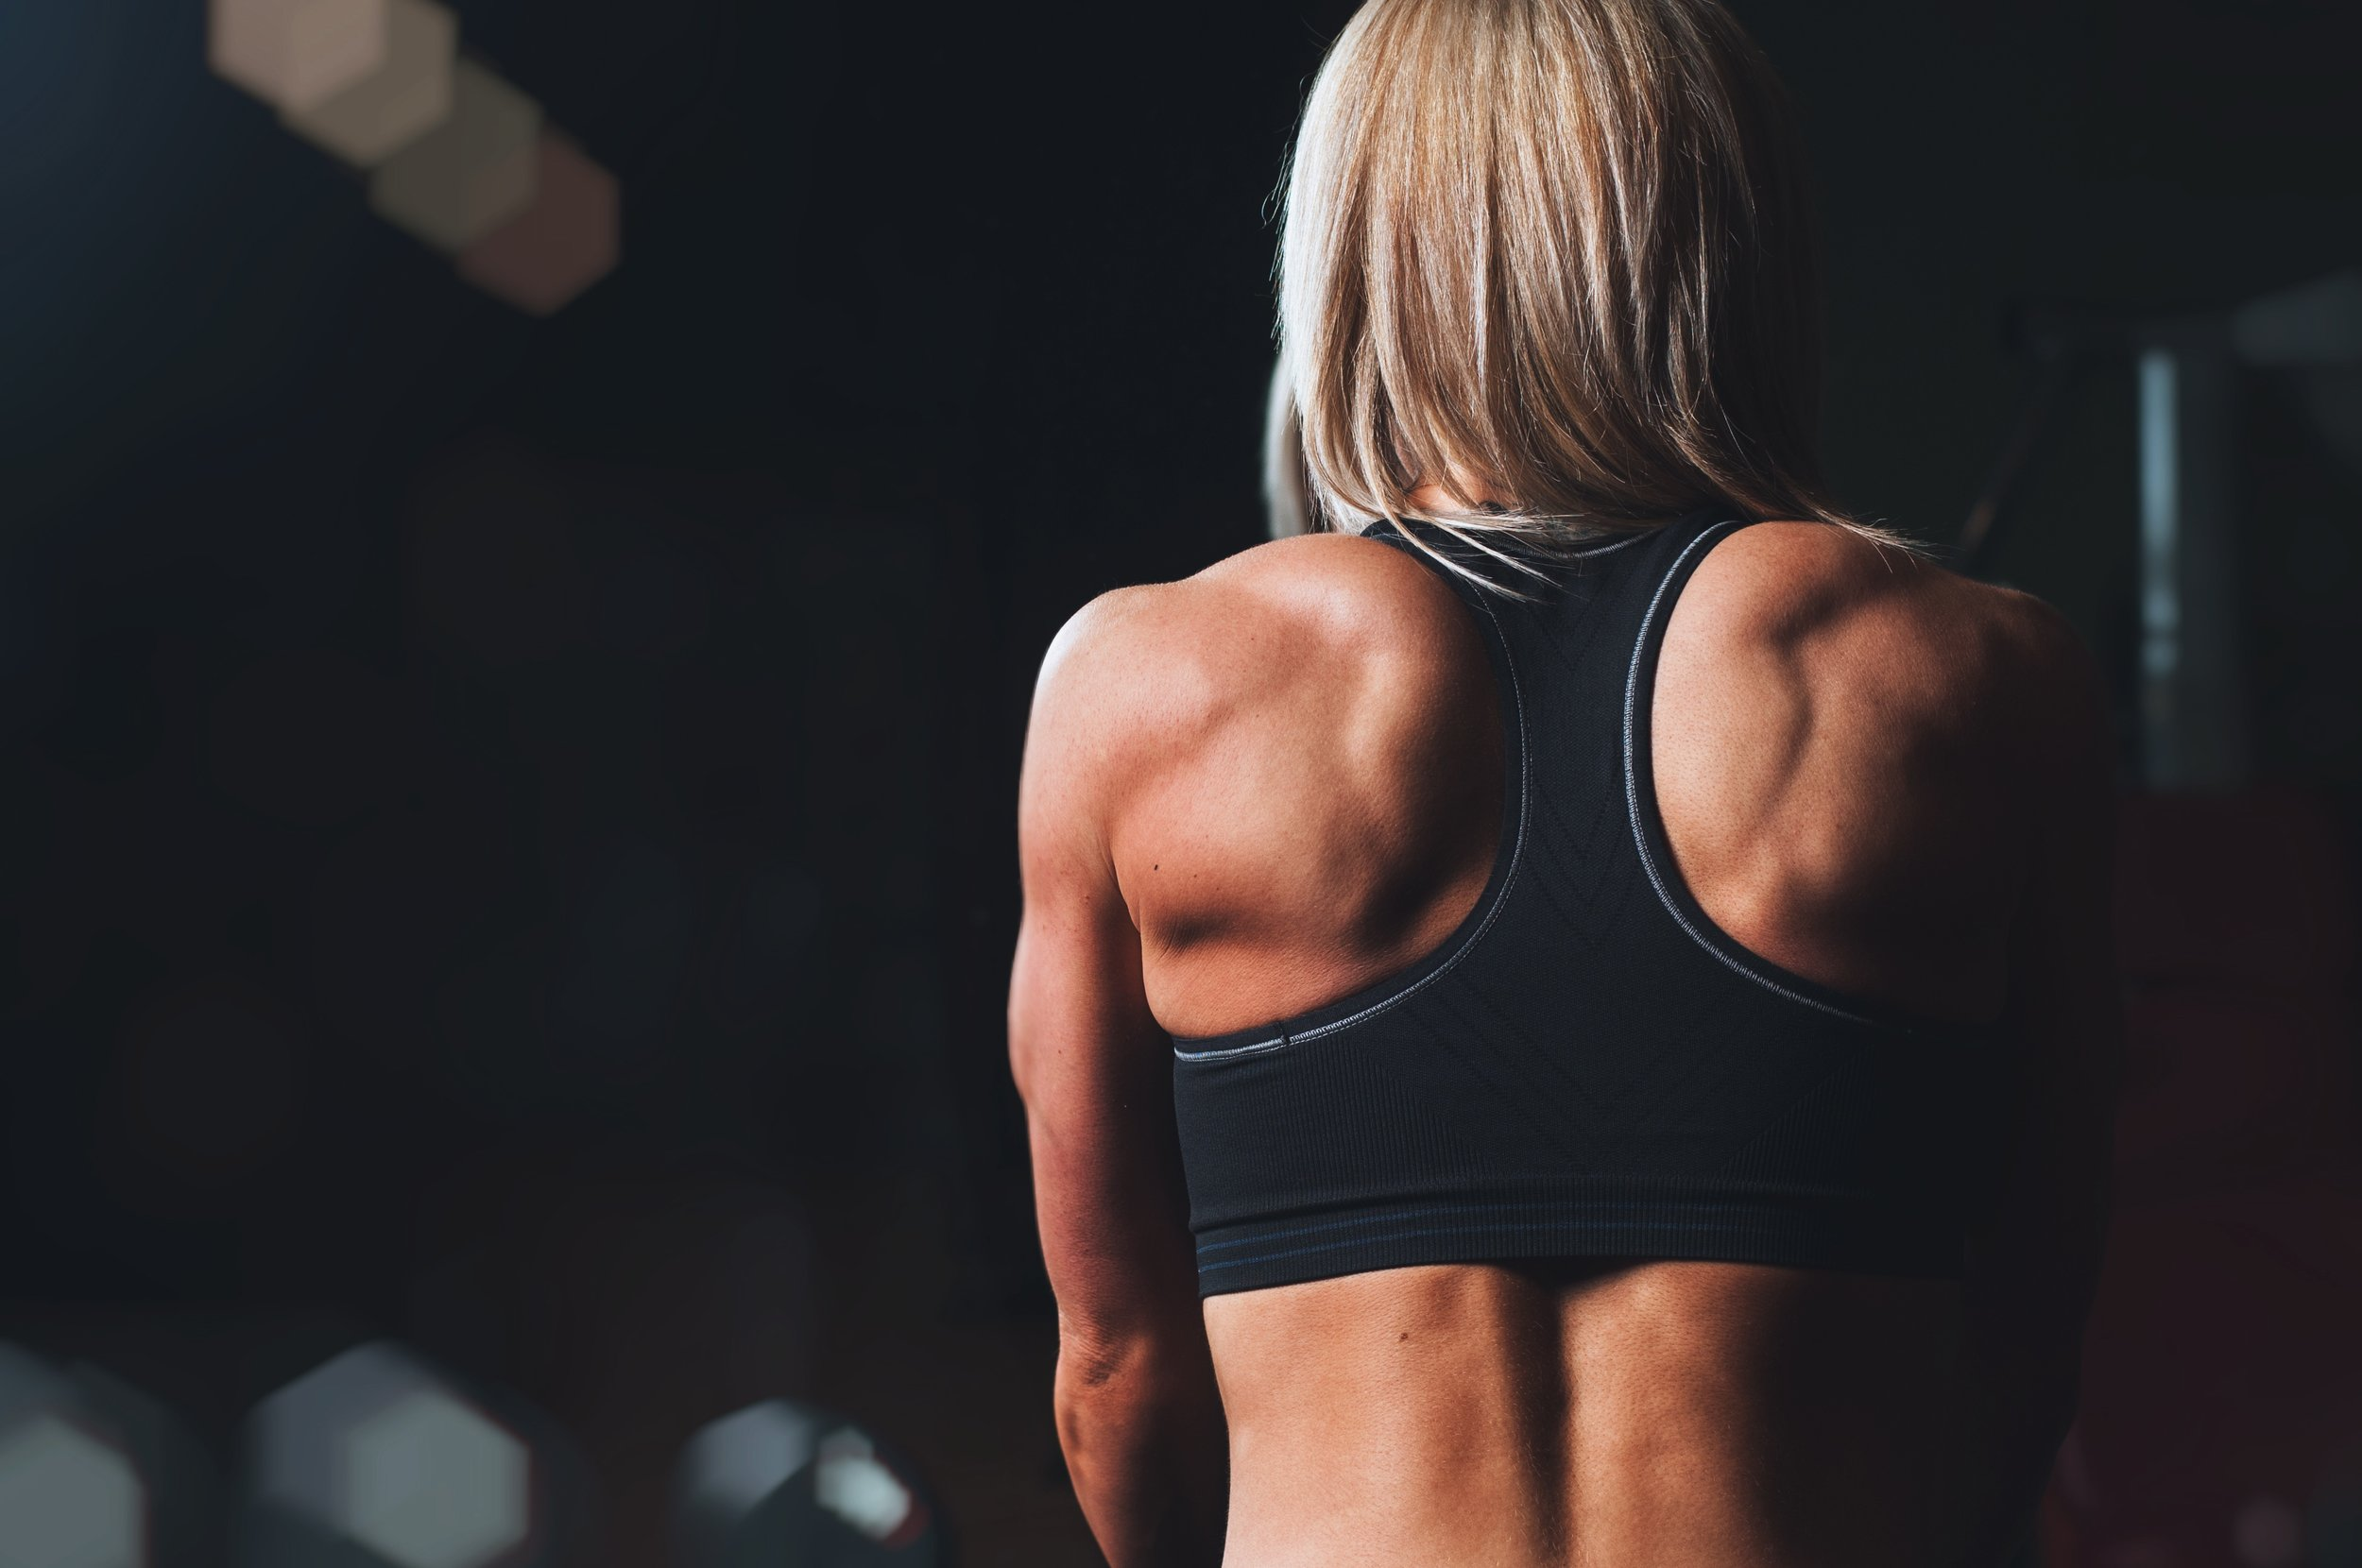 Women's Personal Training& Small Group Training - Are you currently in a gym slump or lumped into a large group program that doesn't address your goals or safety concerns? Get an individualized fitness program that's safe, effective and fun!